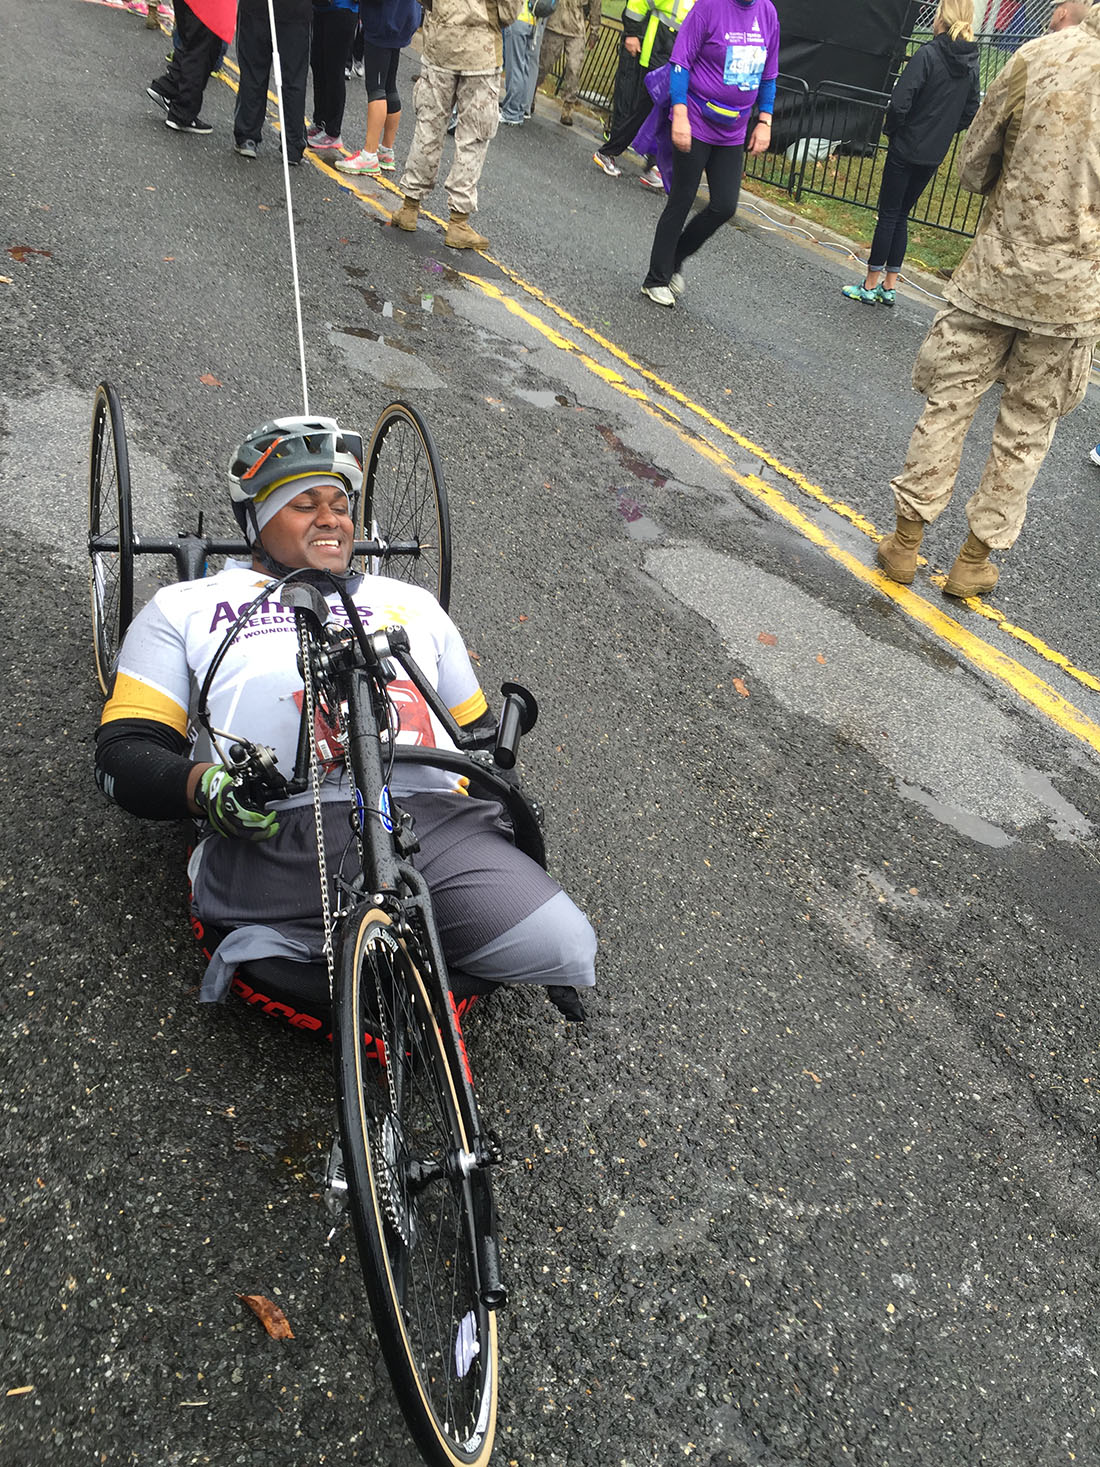 Injured Marine veteran rolls to finish line at Washington, DC, marathon